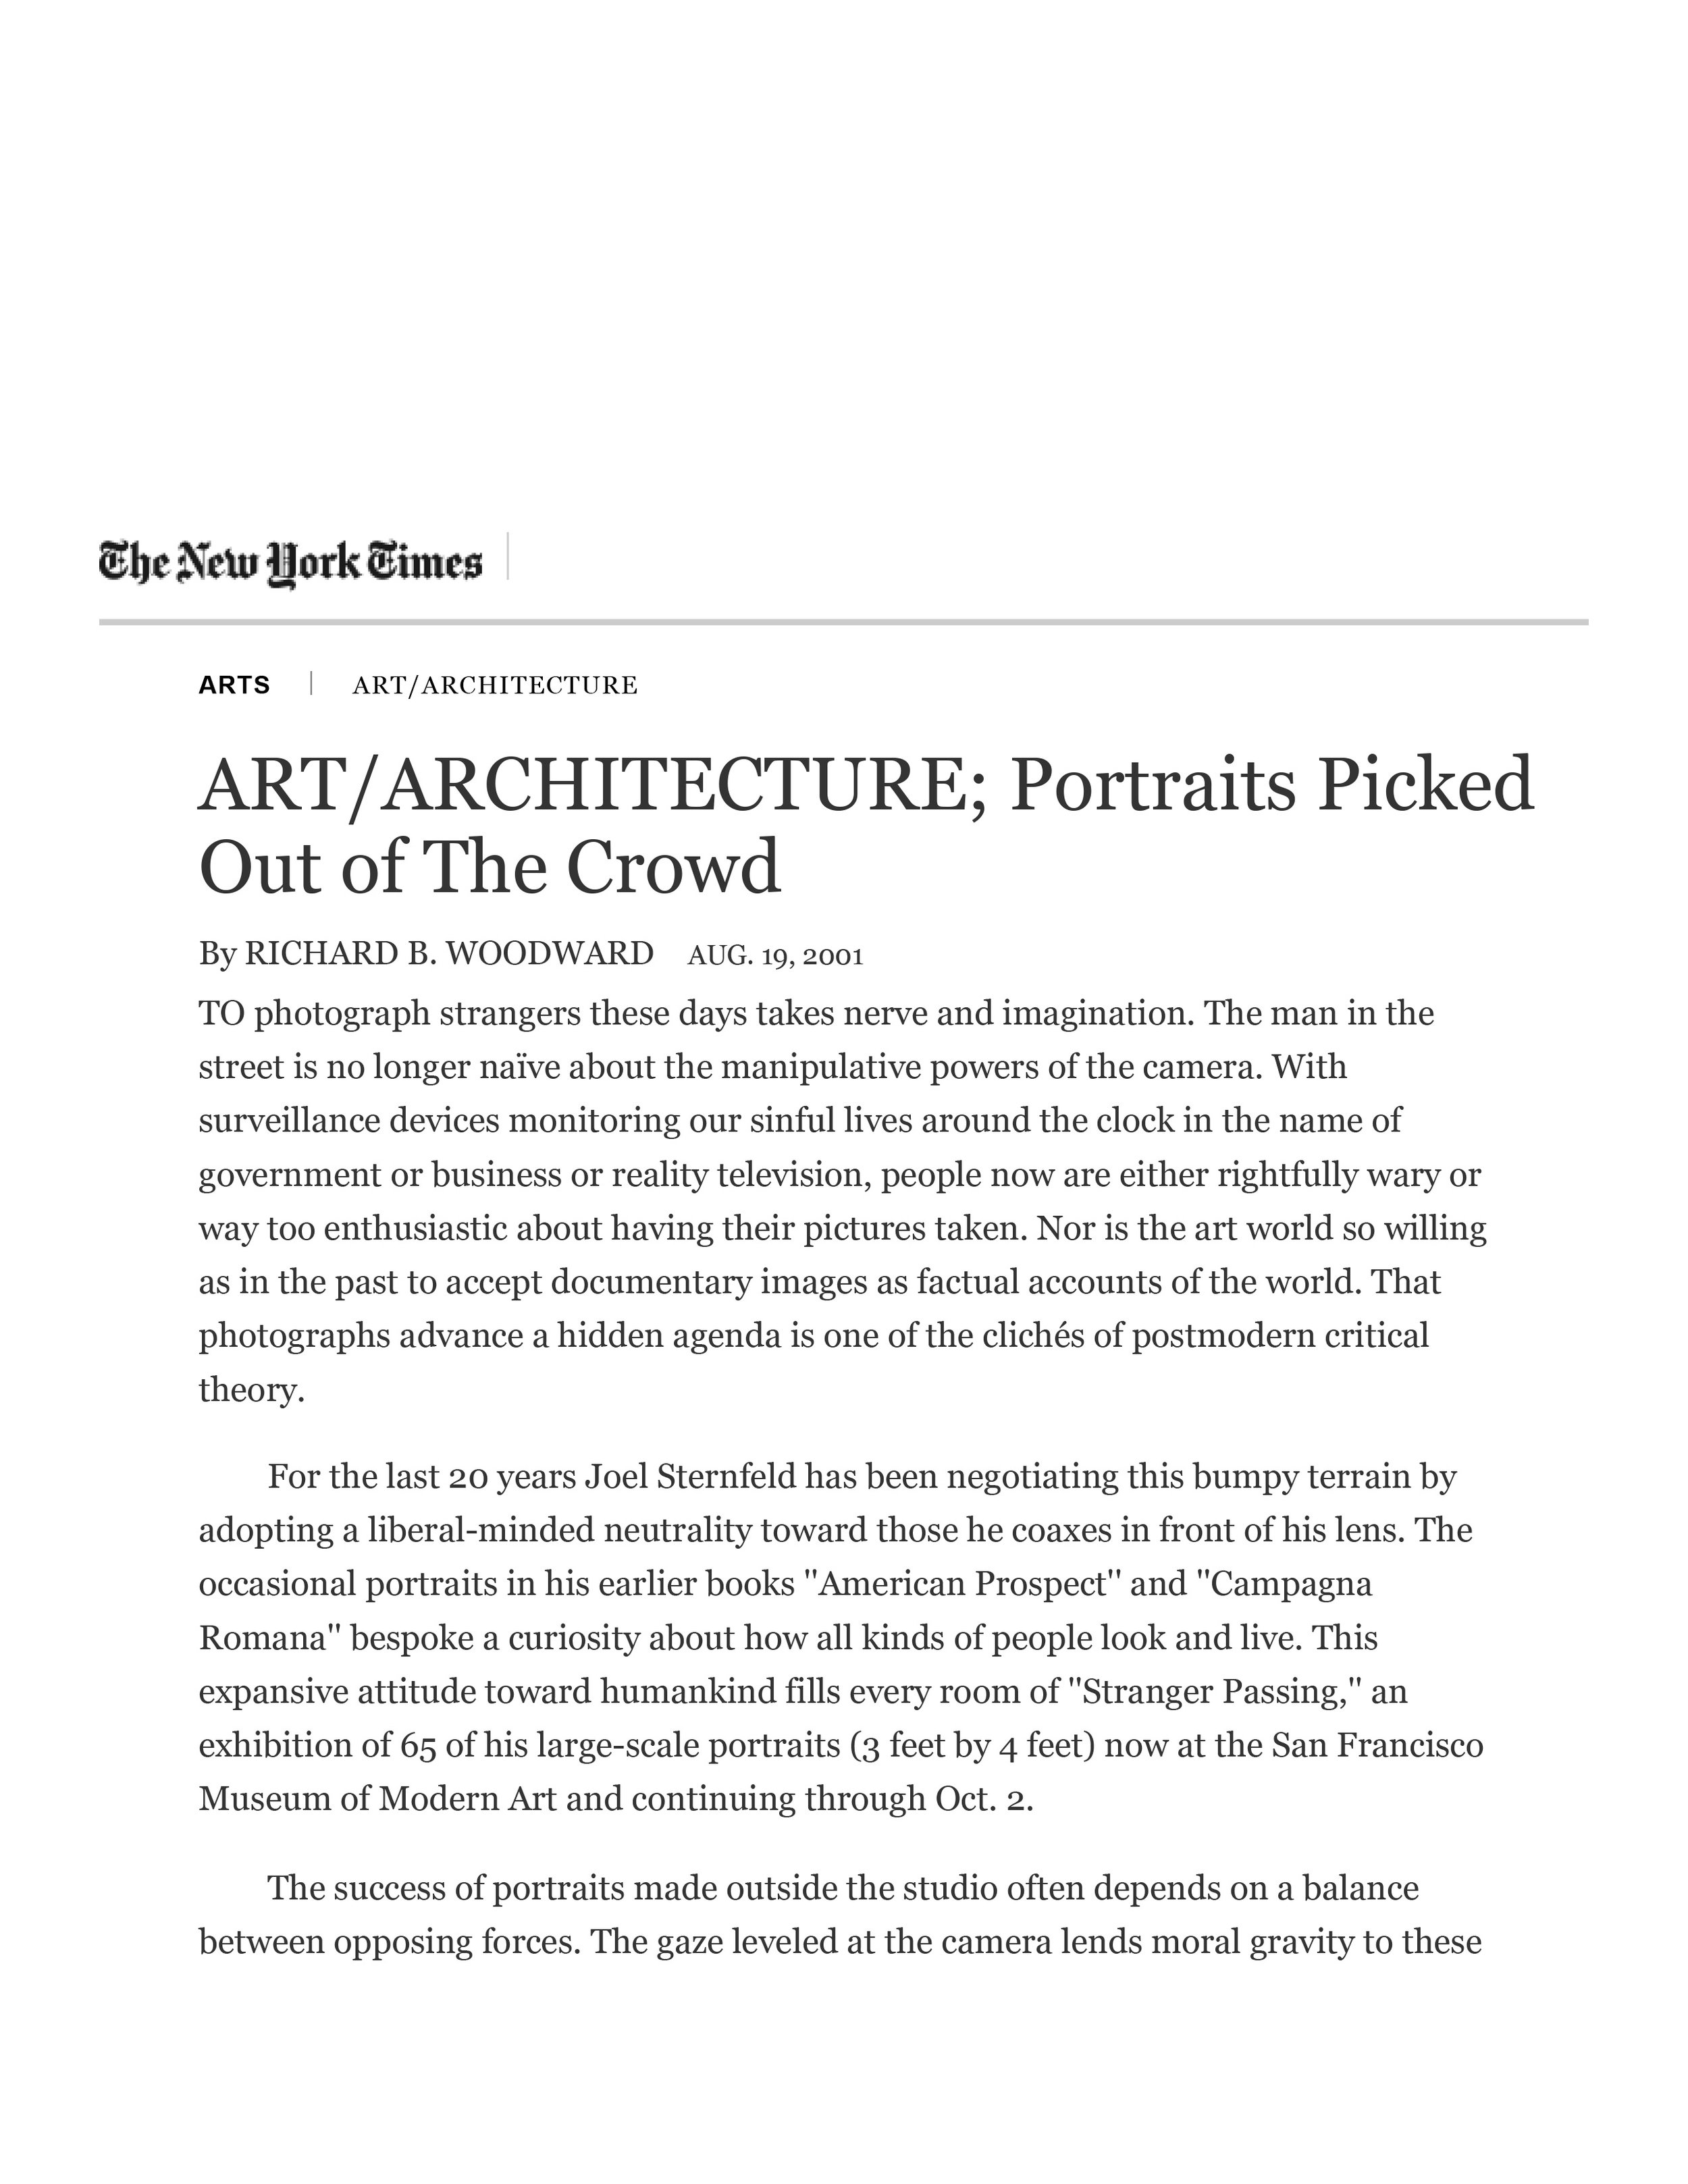 11-ART-ARCHITECTURE;-Portraits-Picked-Out-of-The-Crowd---The-New-York-Times-1.jpg